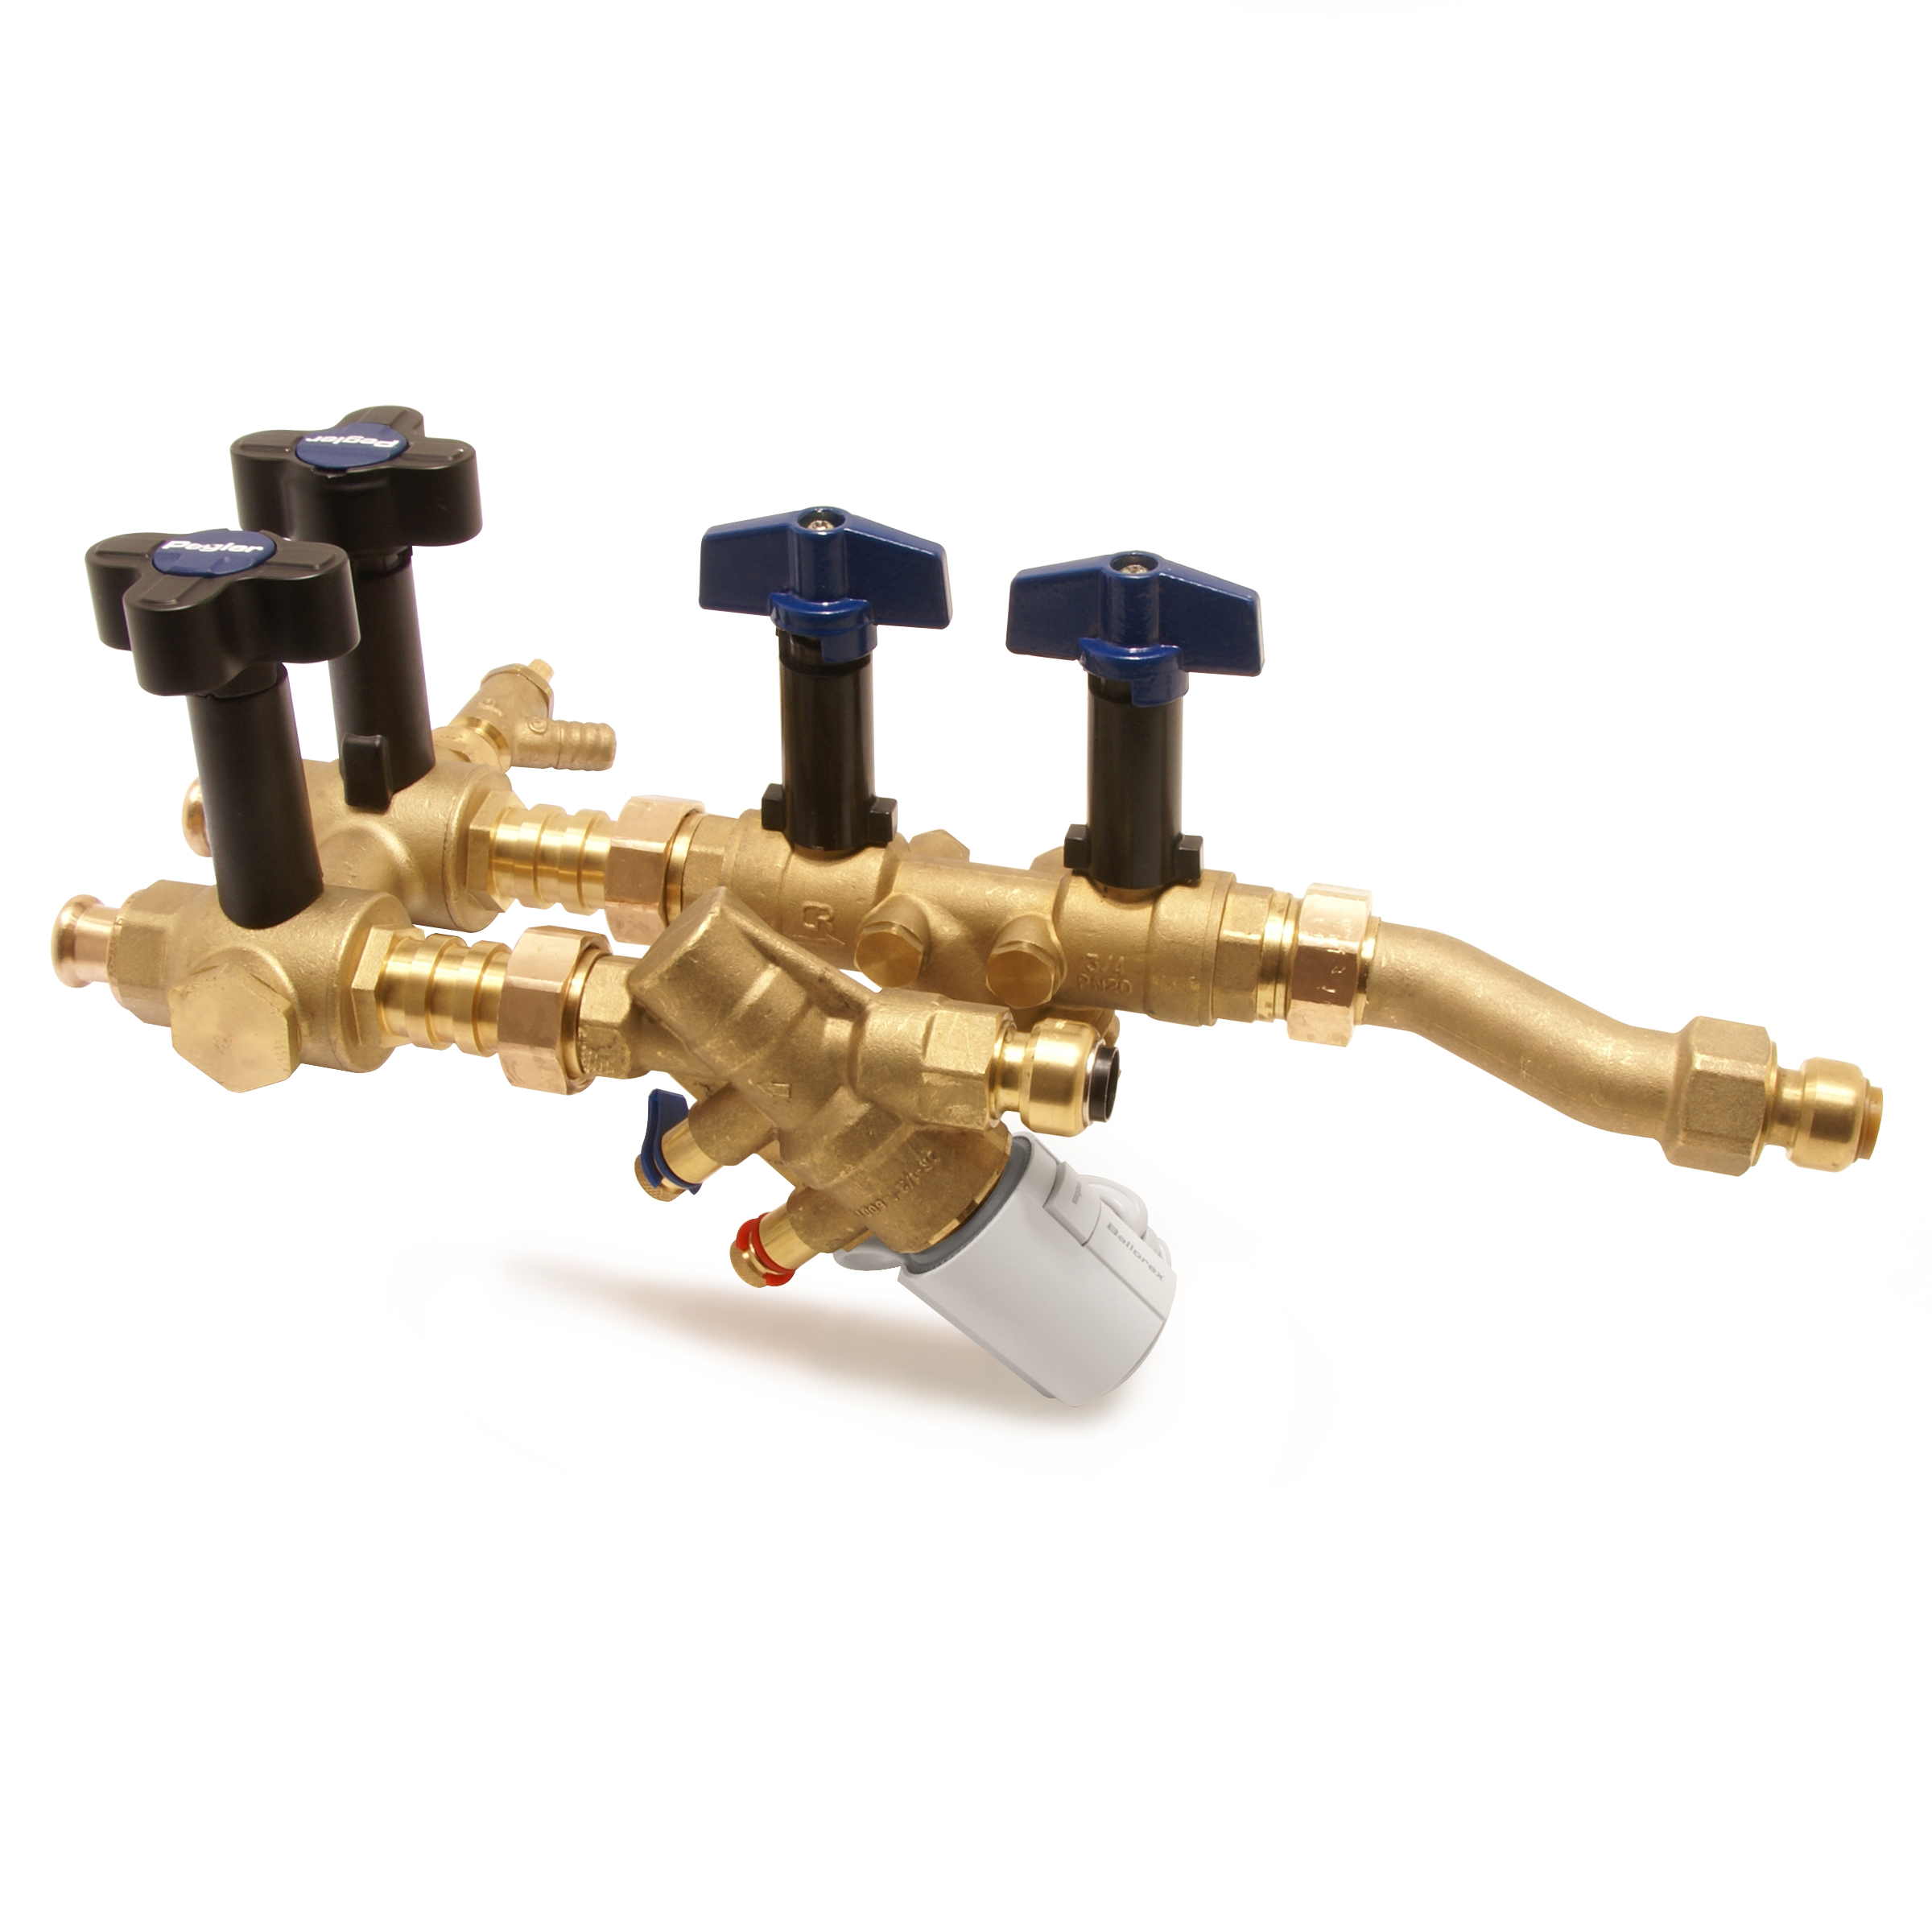 image for Bespoke Modular Valve Solutions